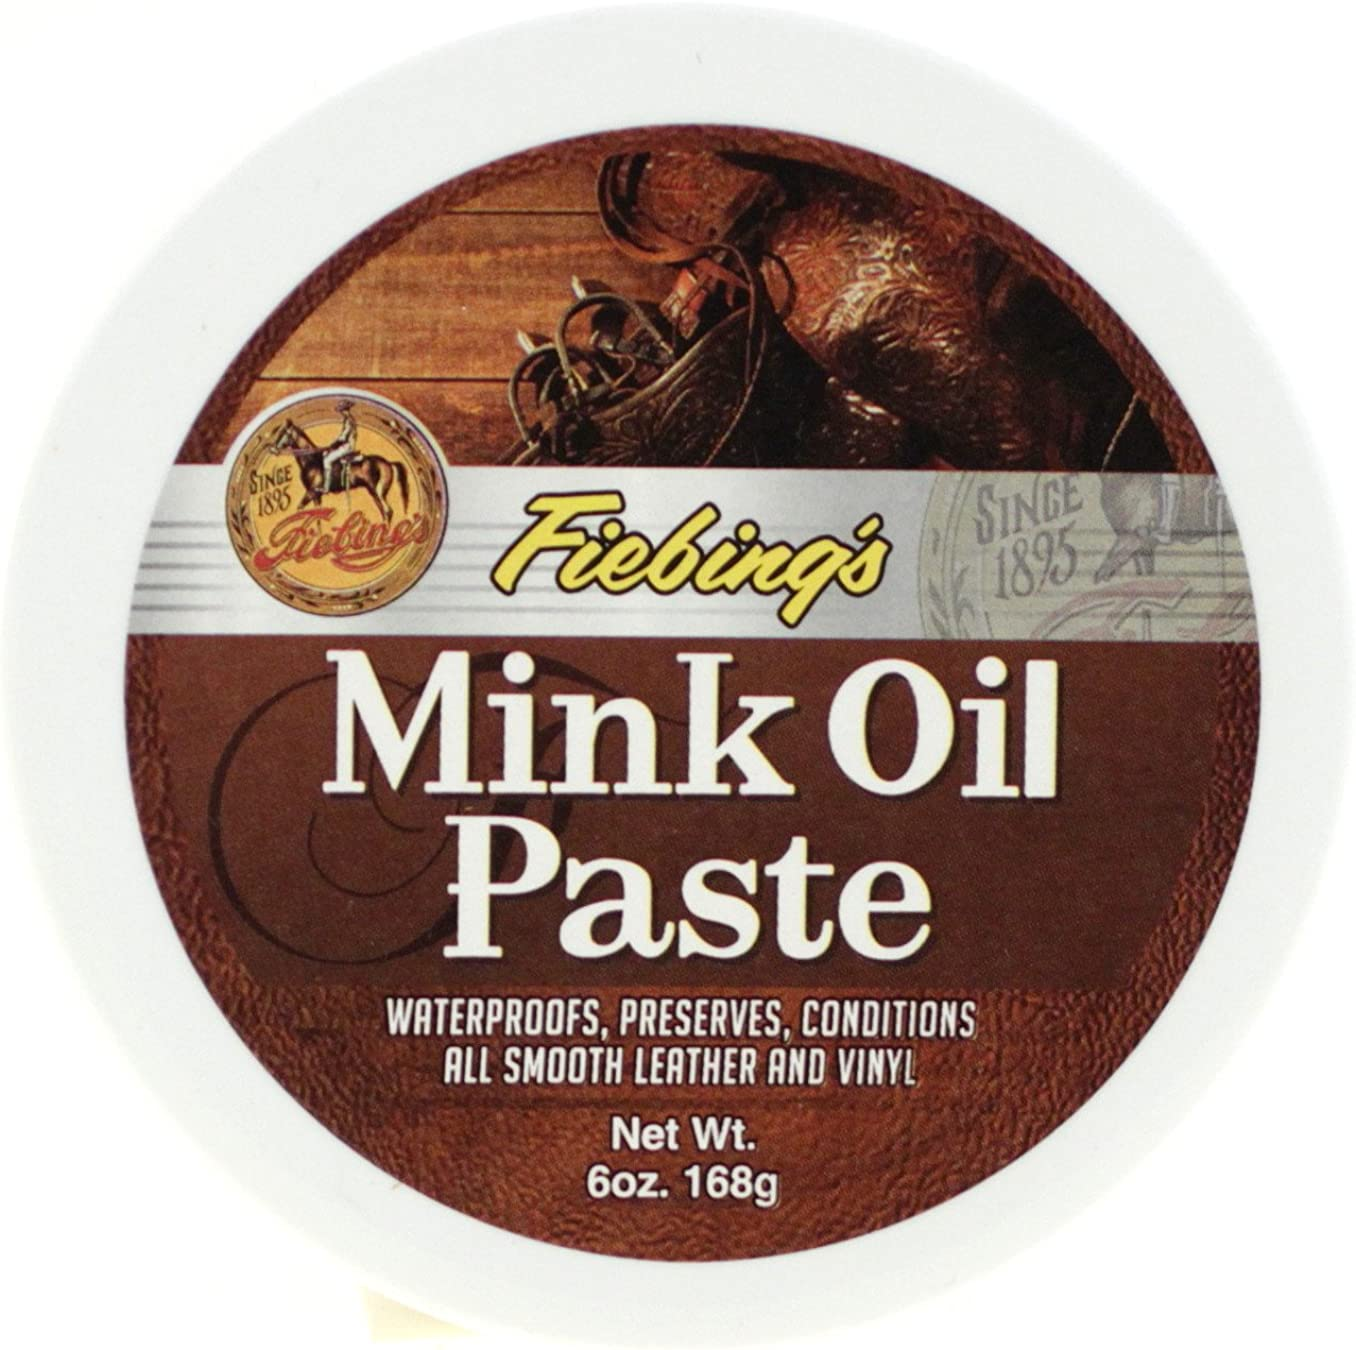 Fiebings Mink Oil Paste For Smooth Leather And Vinyl Condition And Protect